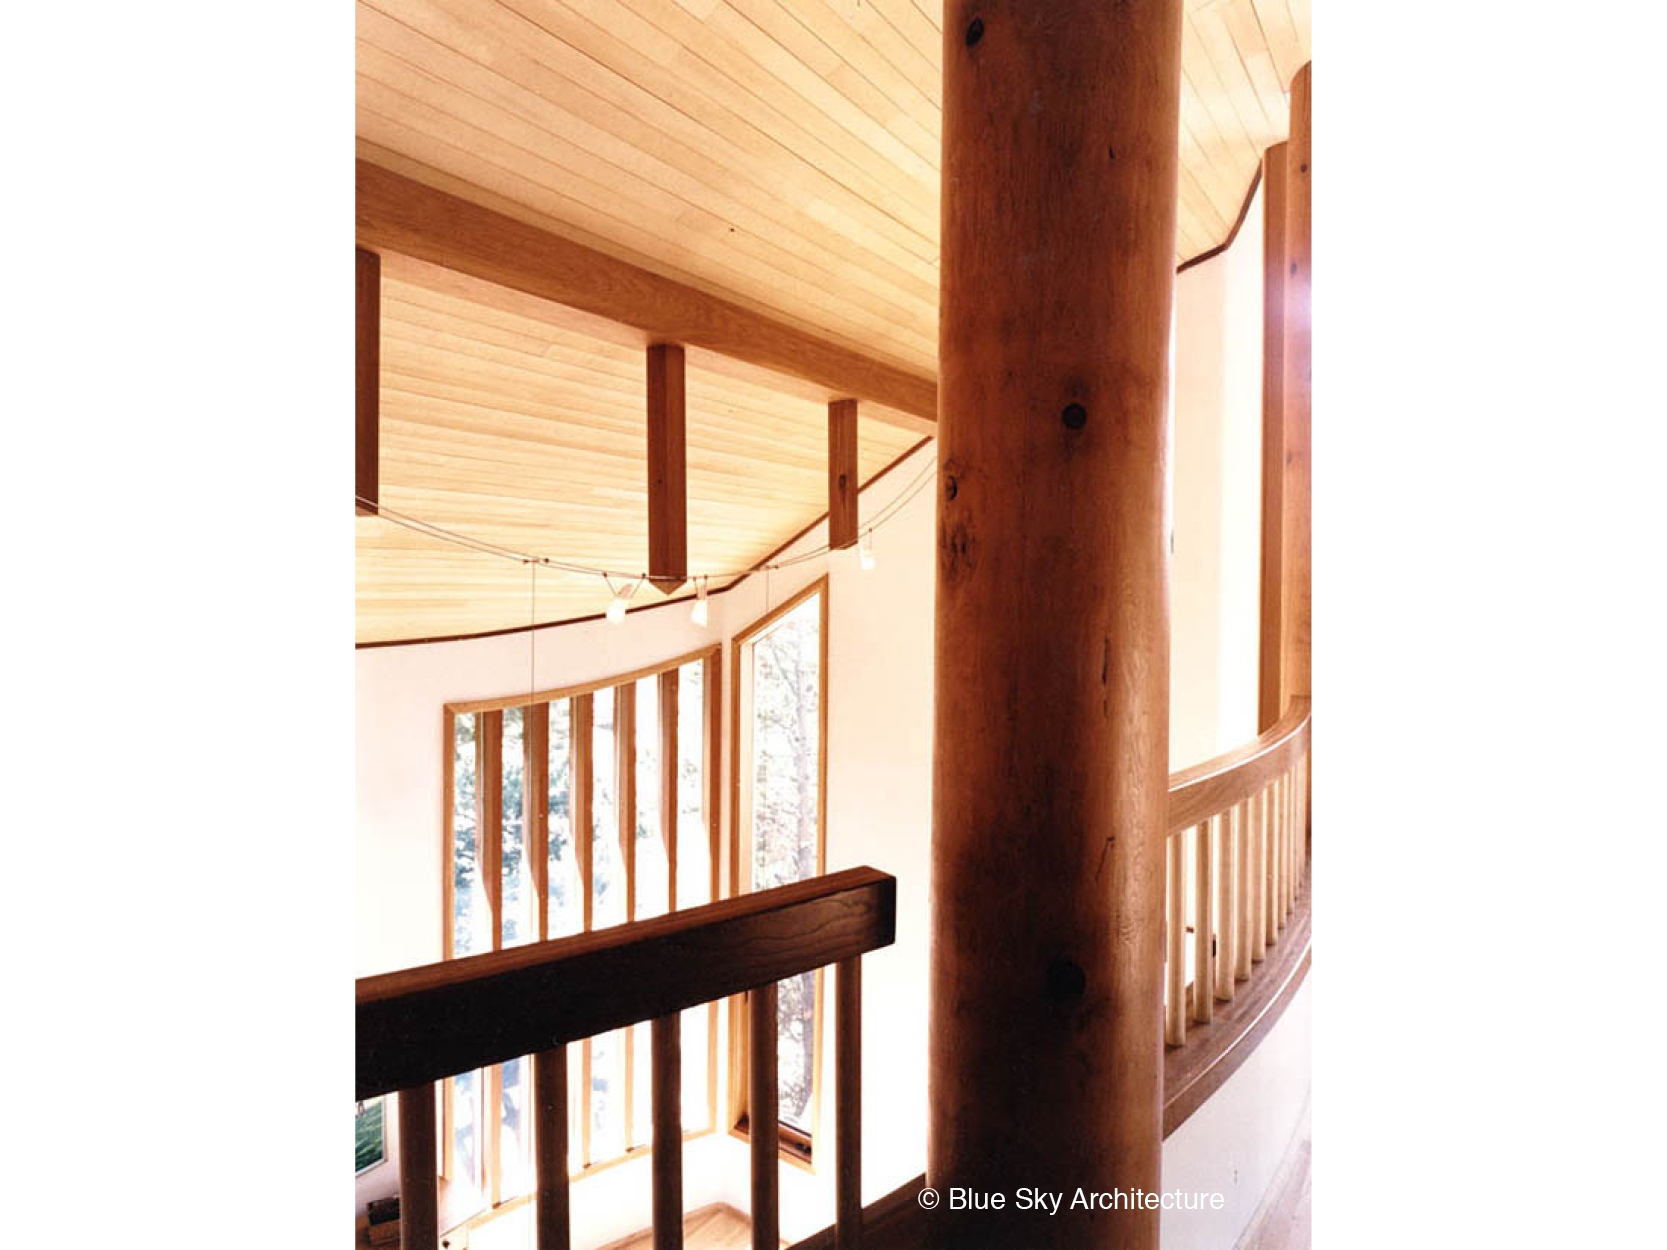 Heavy Timber Mezzanine with Fir Ceiling